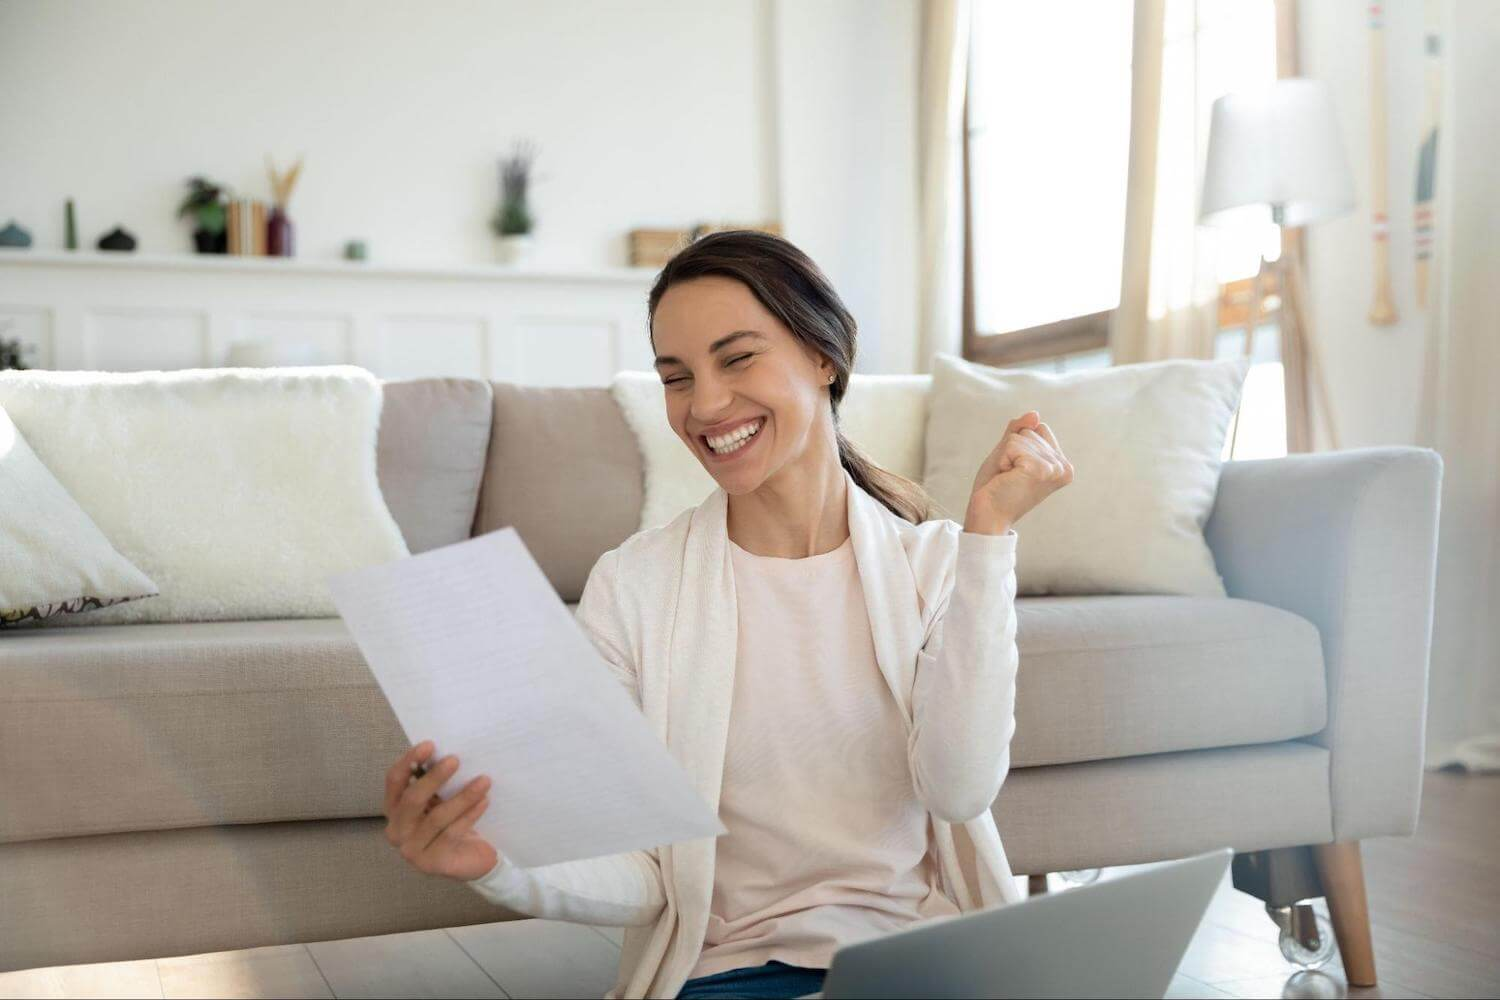 A woman celebrates while looking at a piece of paper